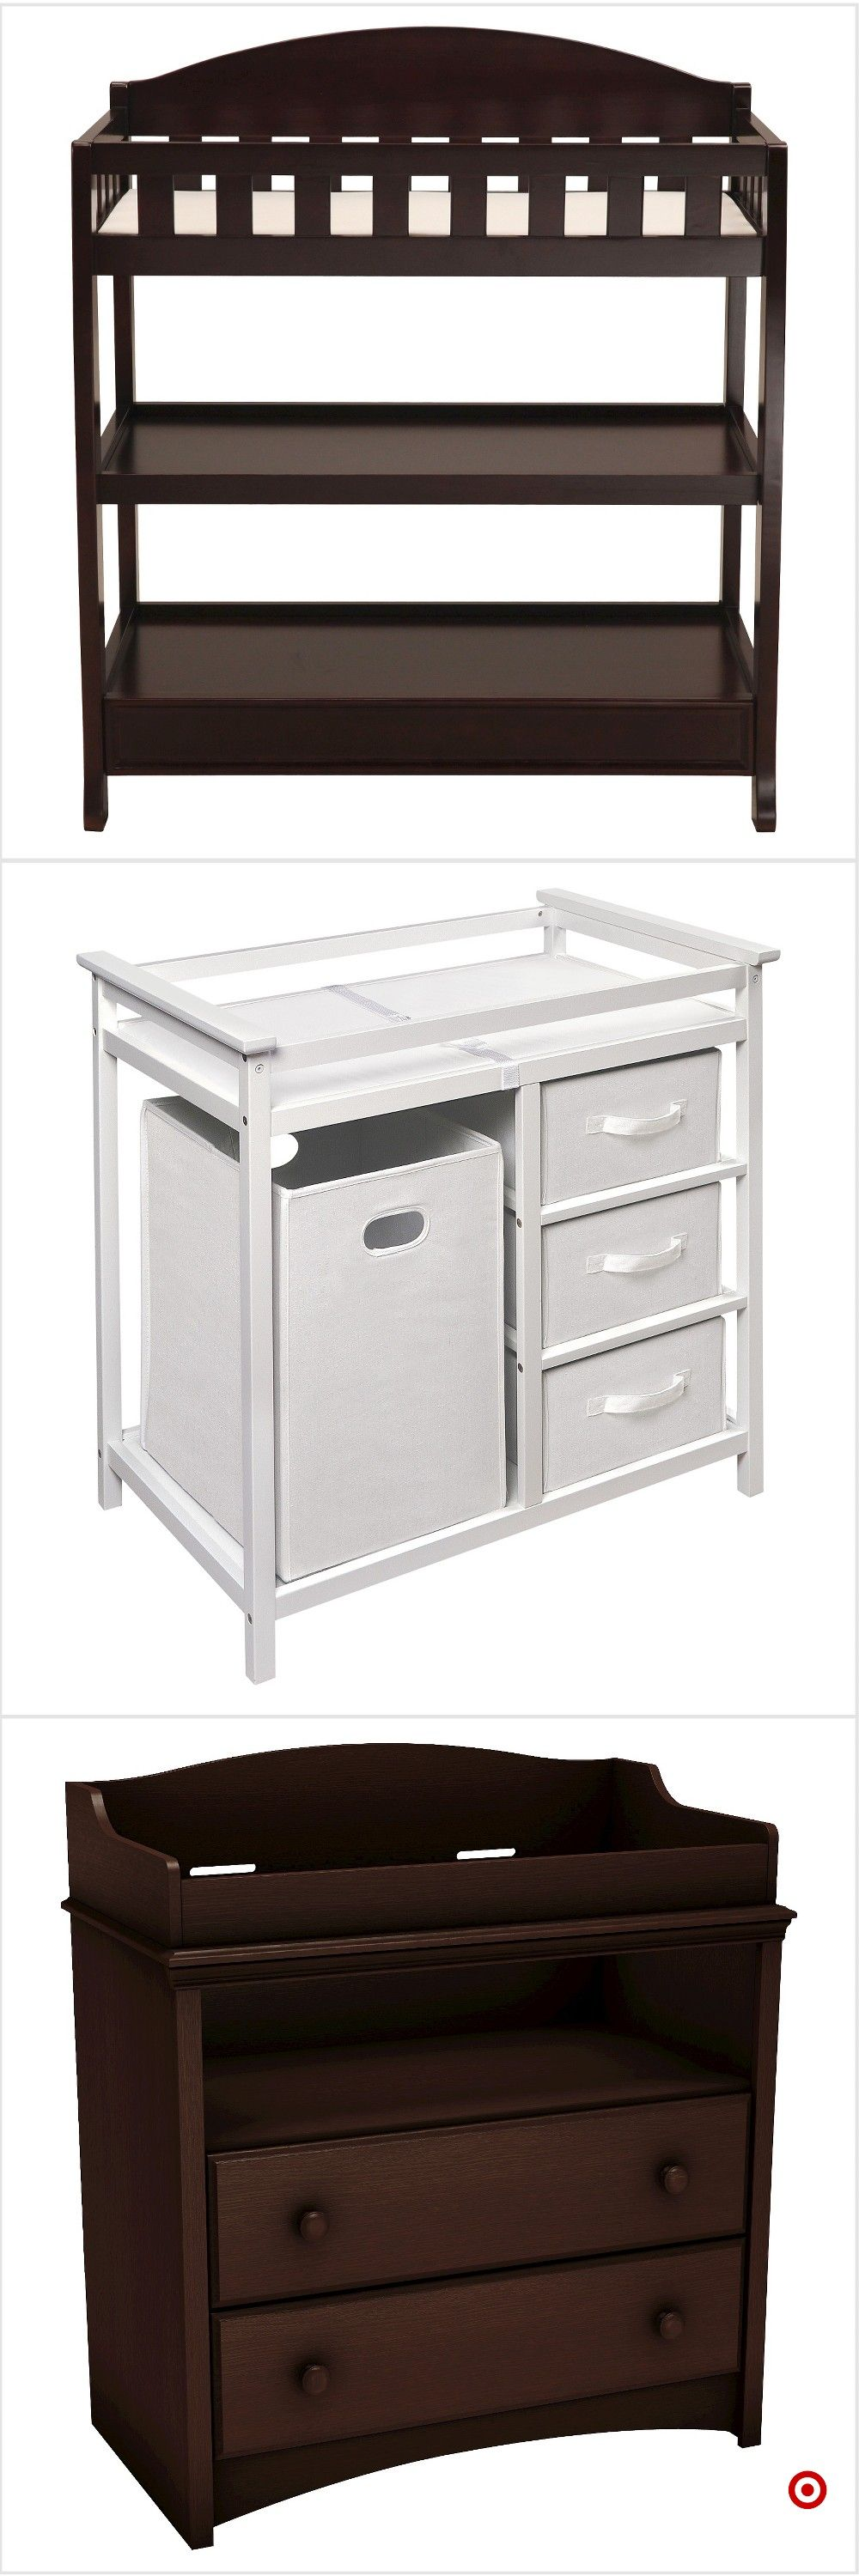 Shop Target for changing table you will love at great low ...